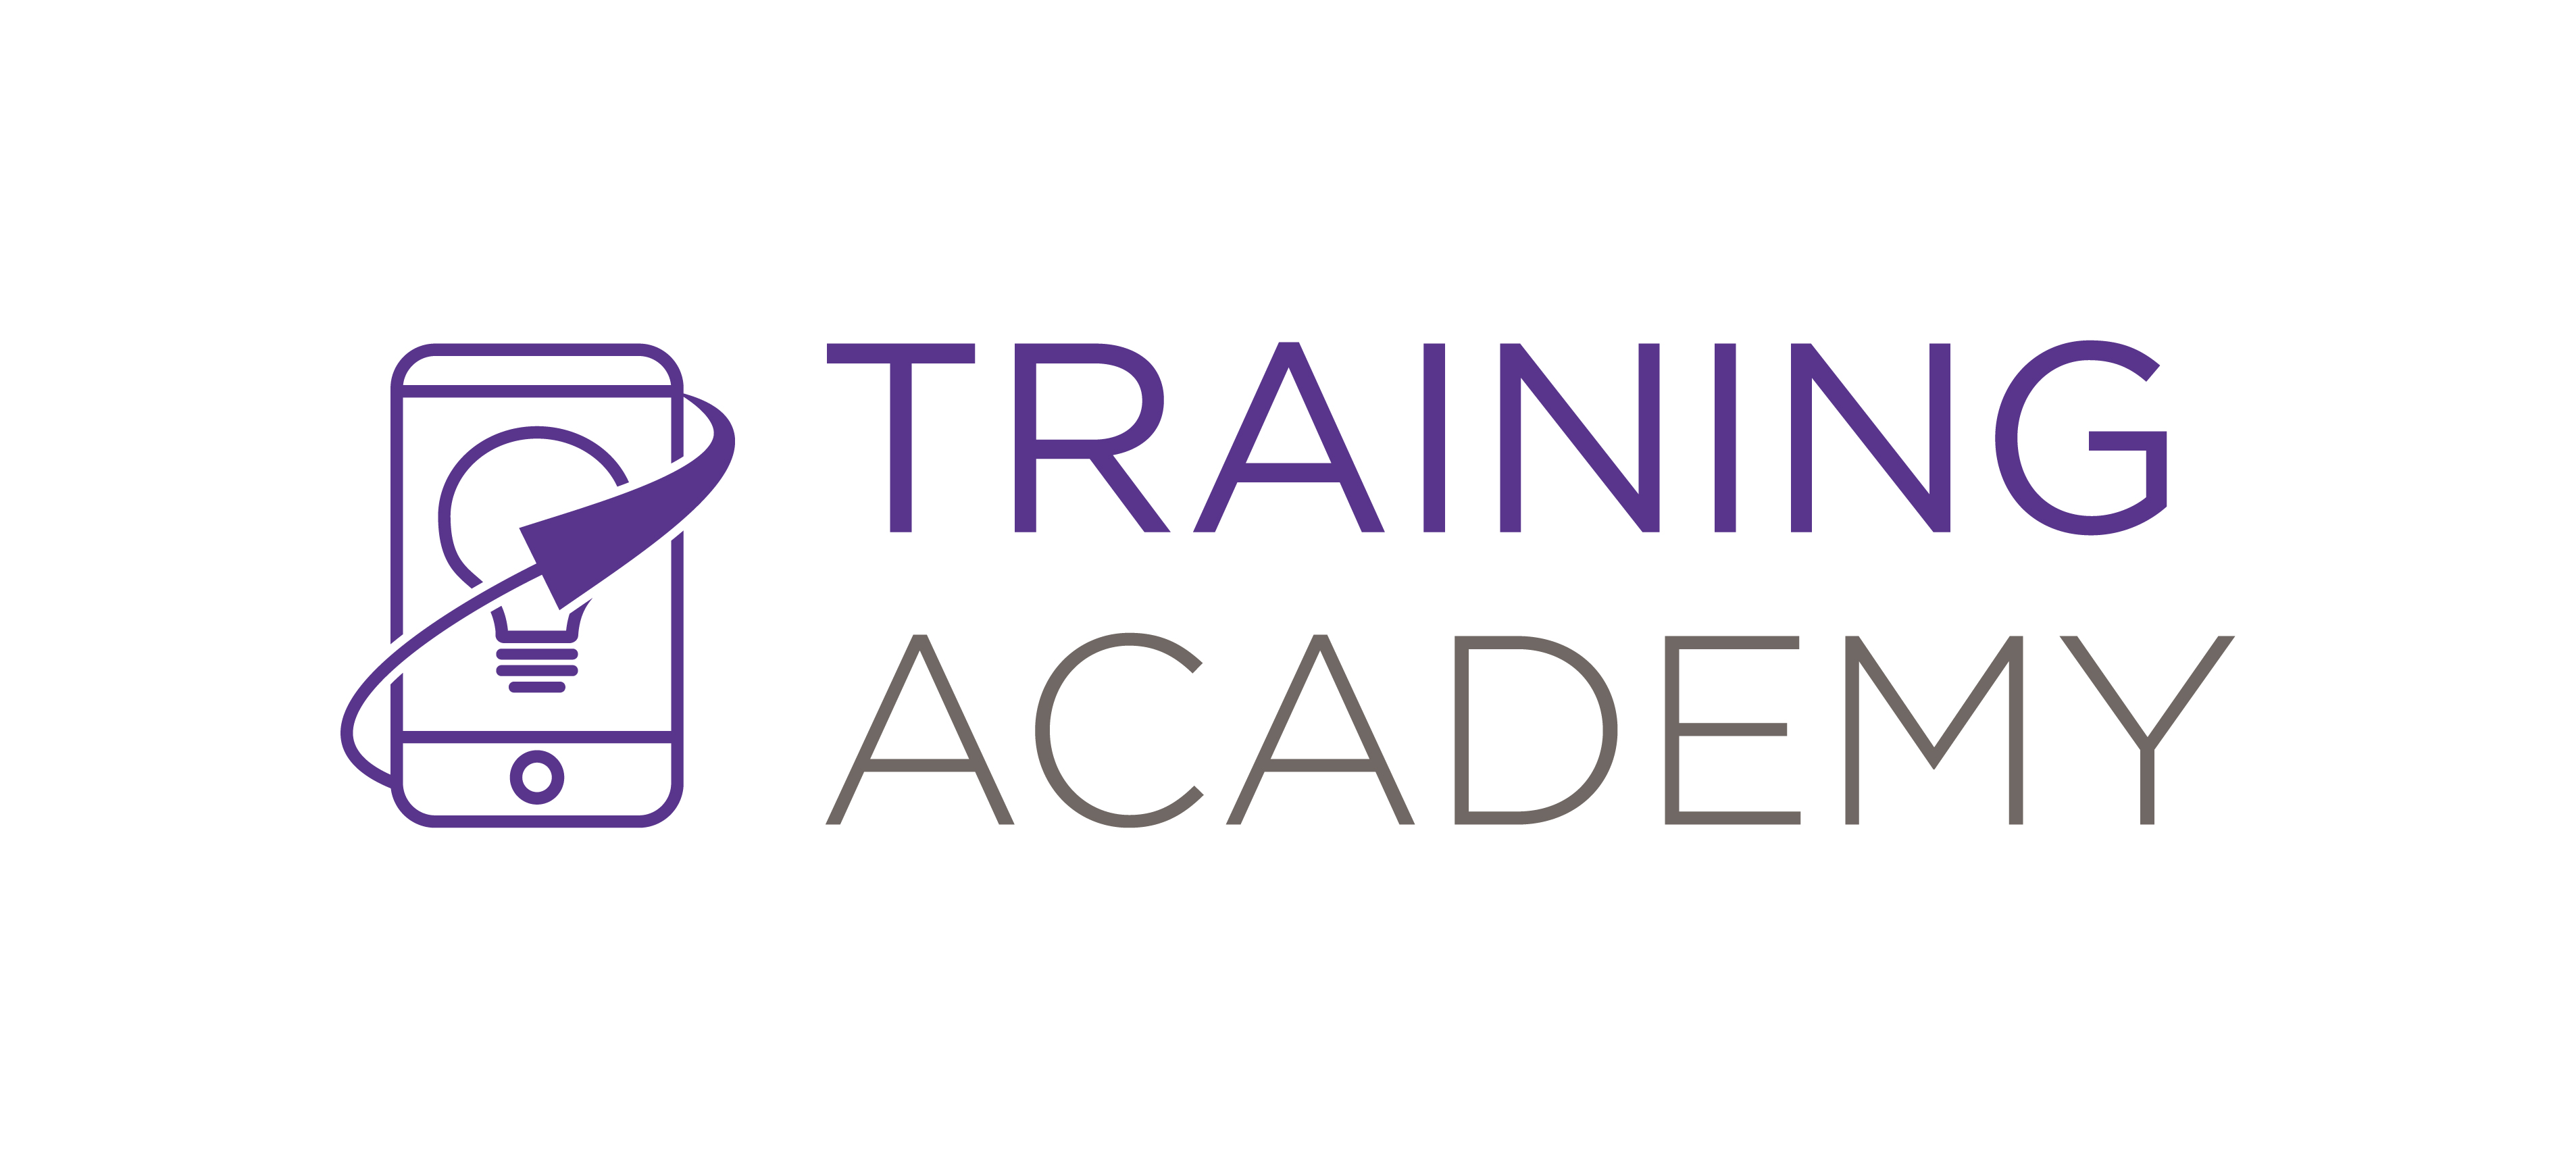 Training academy logo-01